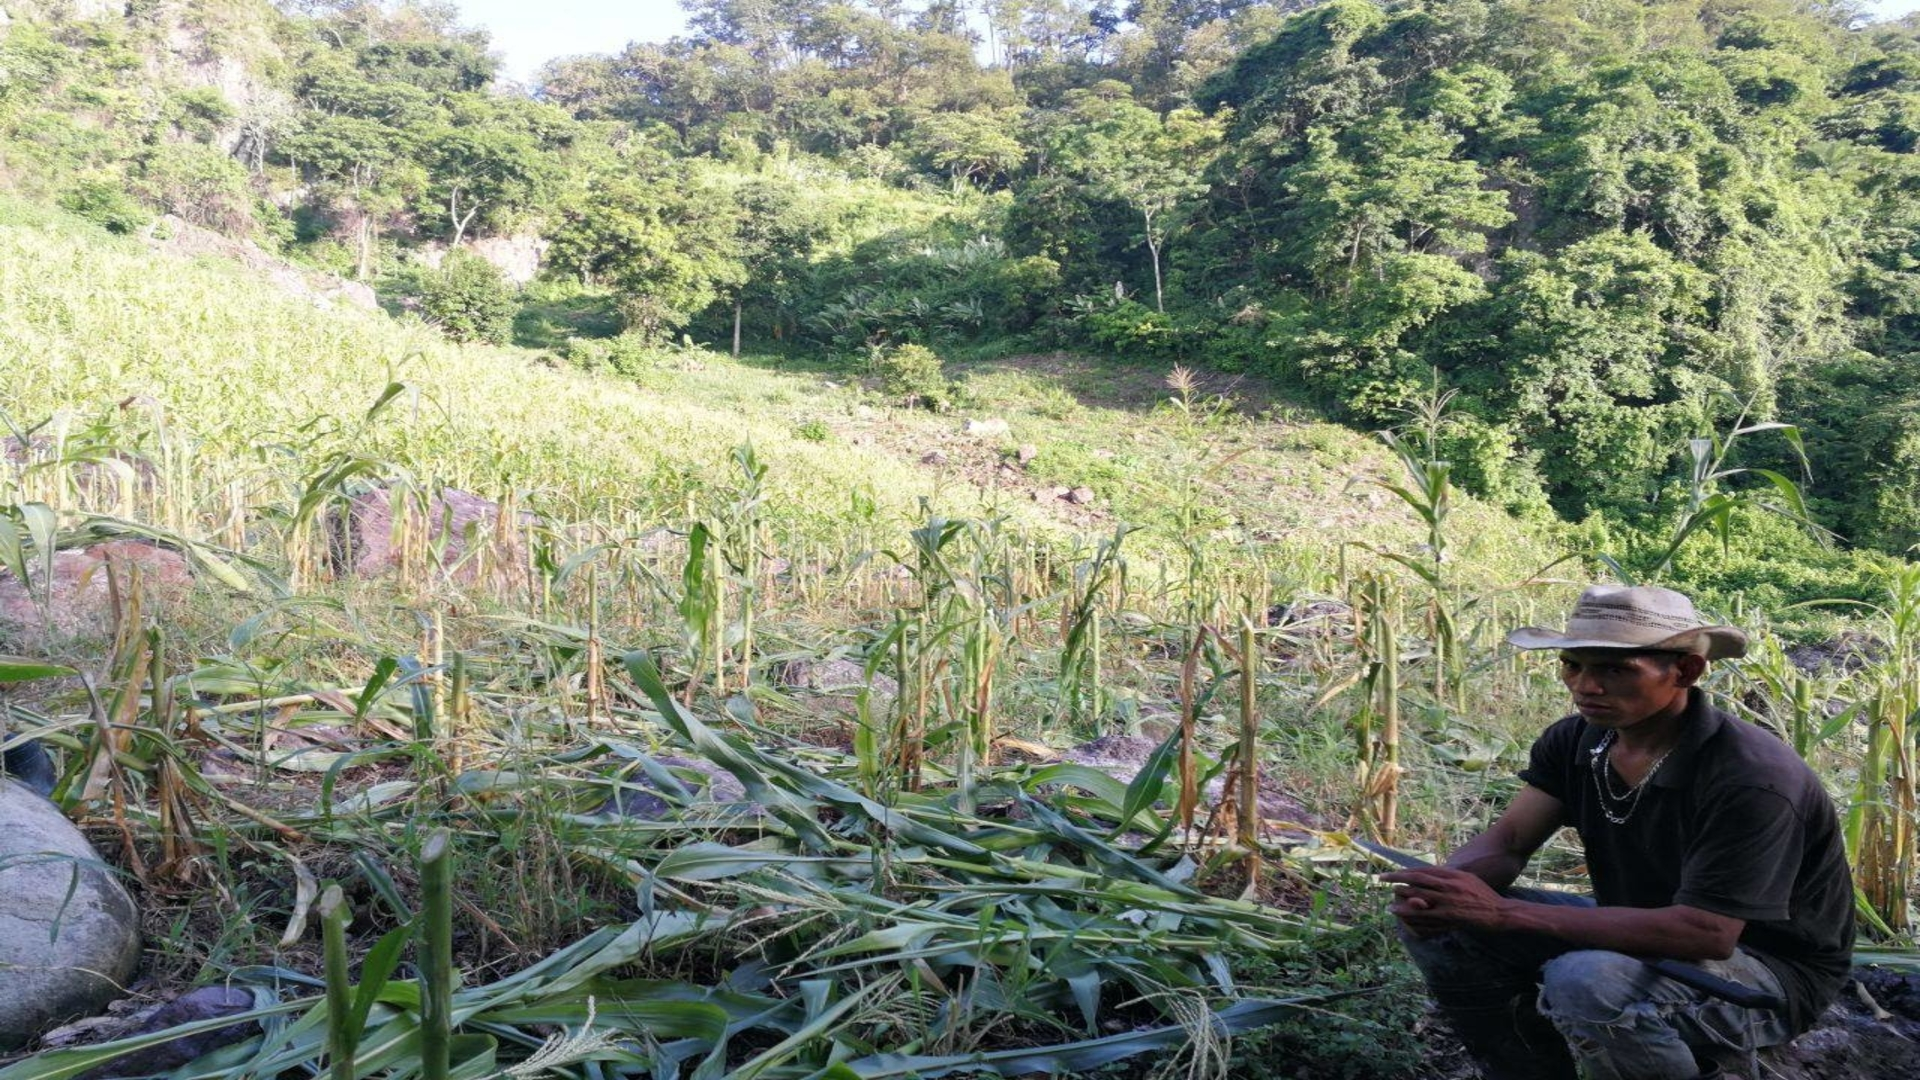 Who would destroy a community's food crops?